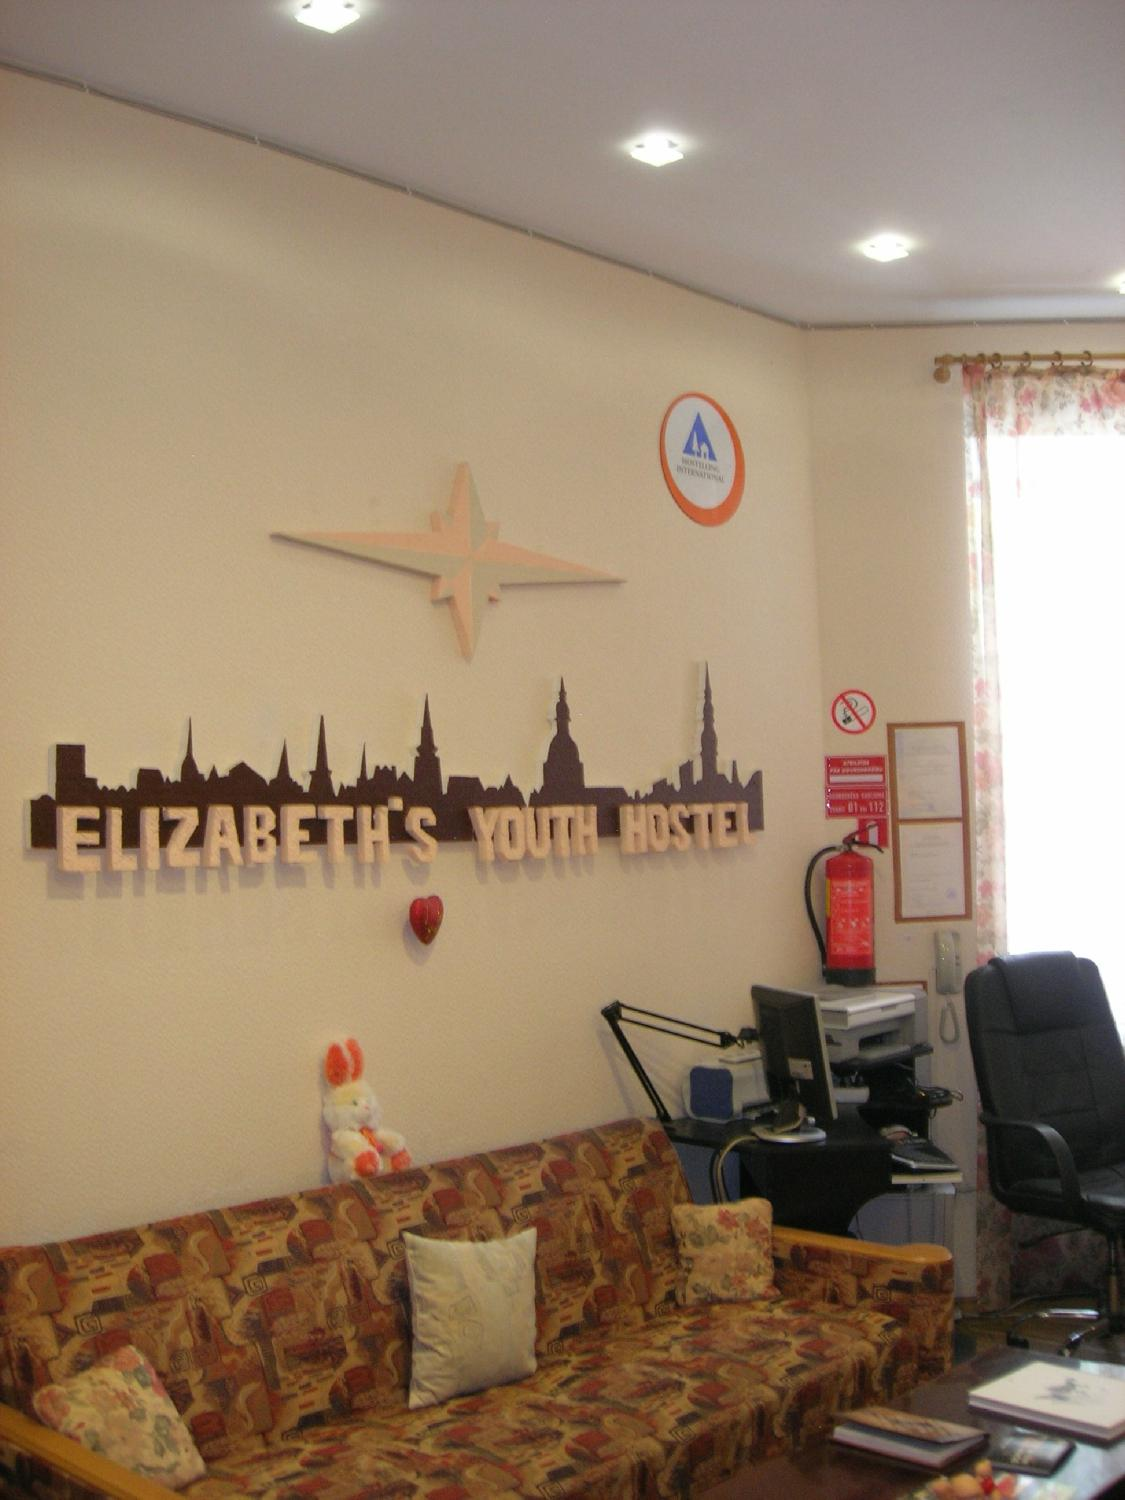 Elizabeth's Youth Hostel